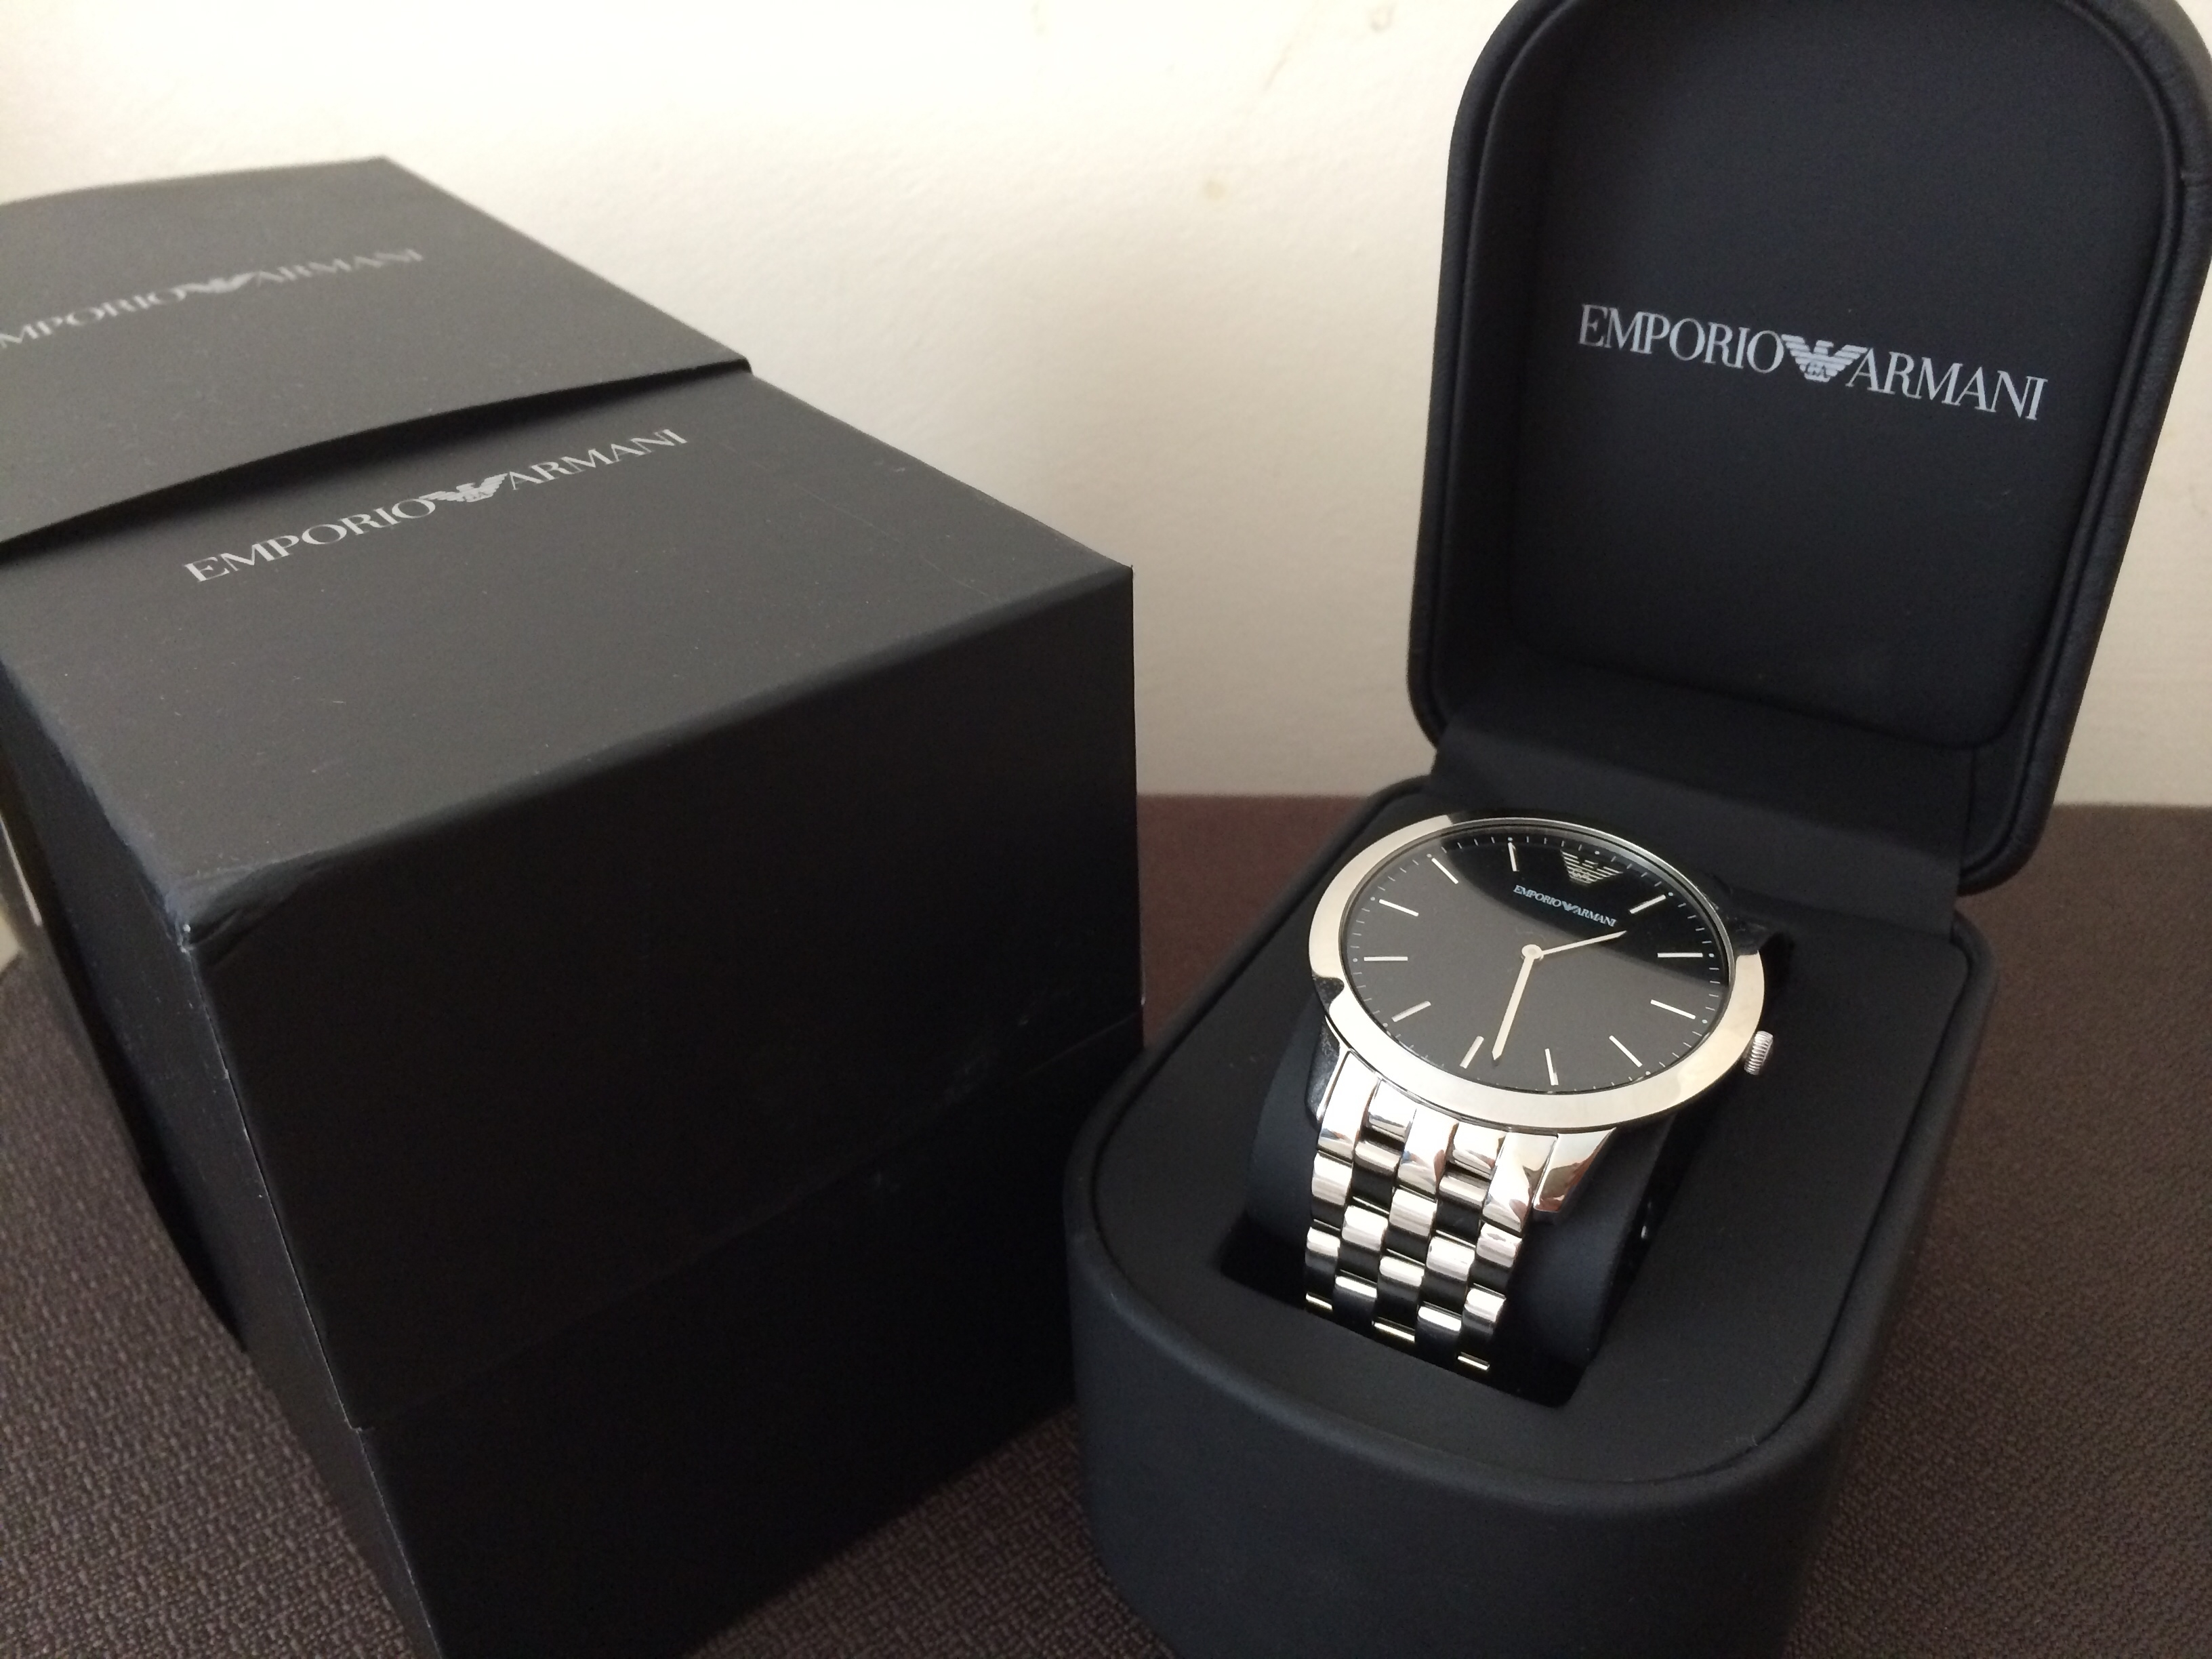 fb8c75af922f Silver Metal AR1744 Emporio Armani Watch